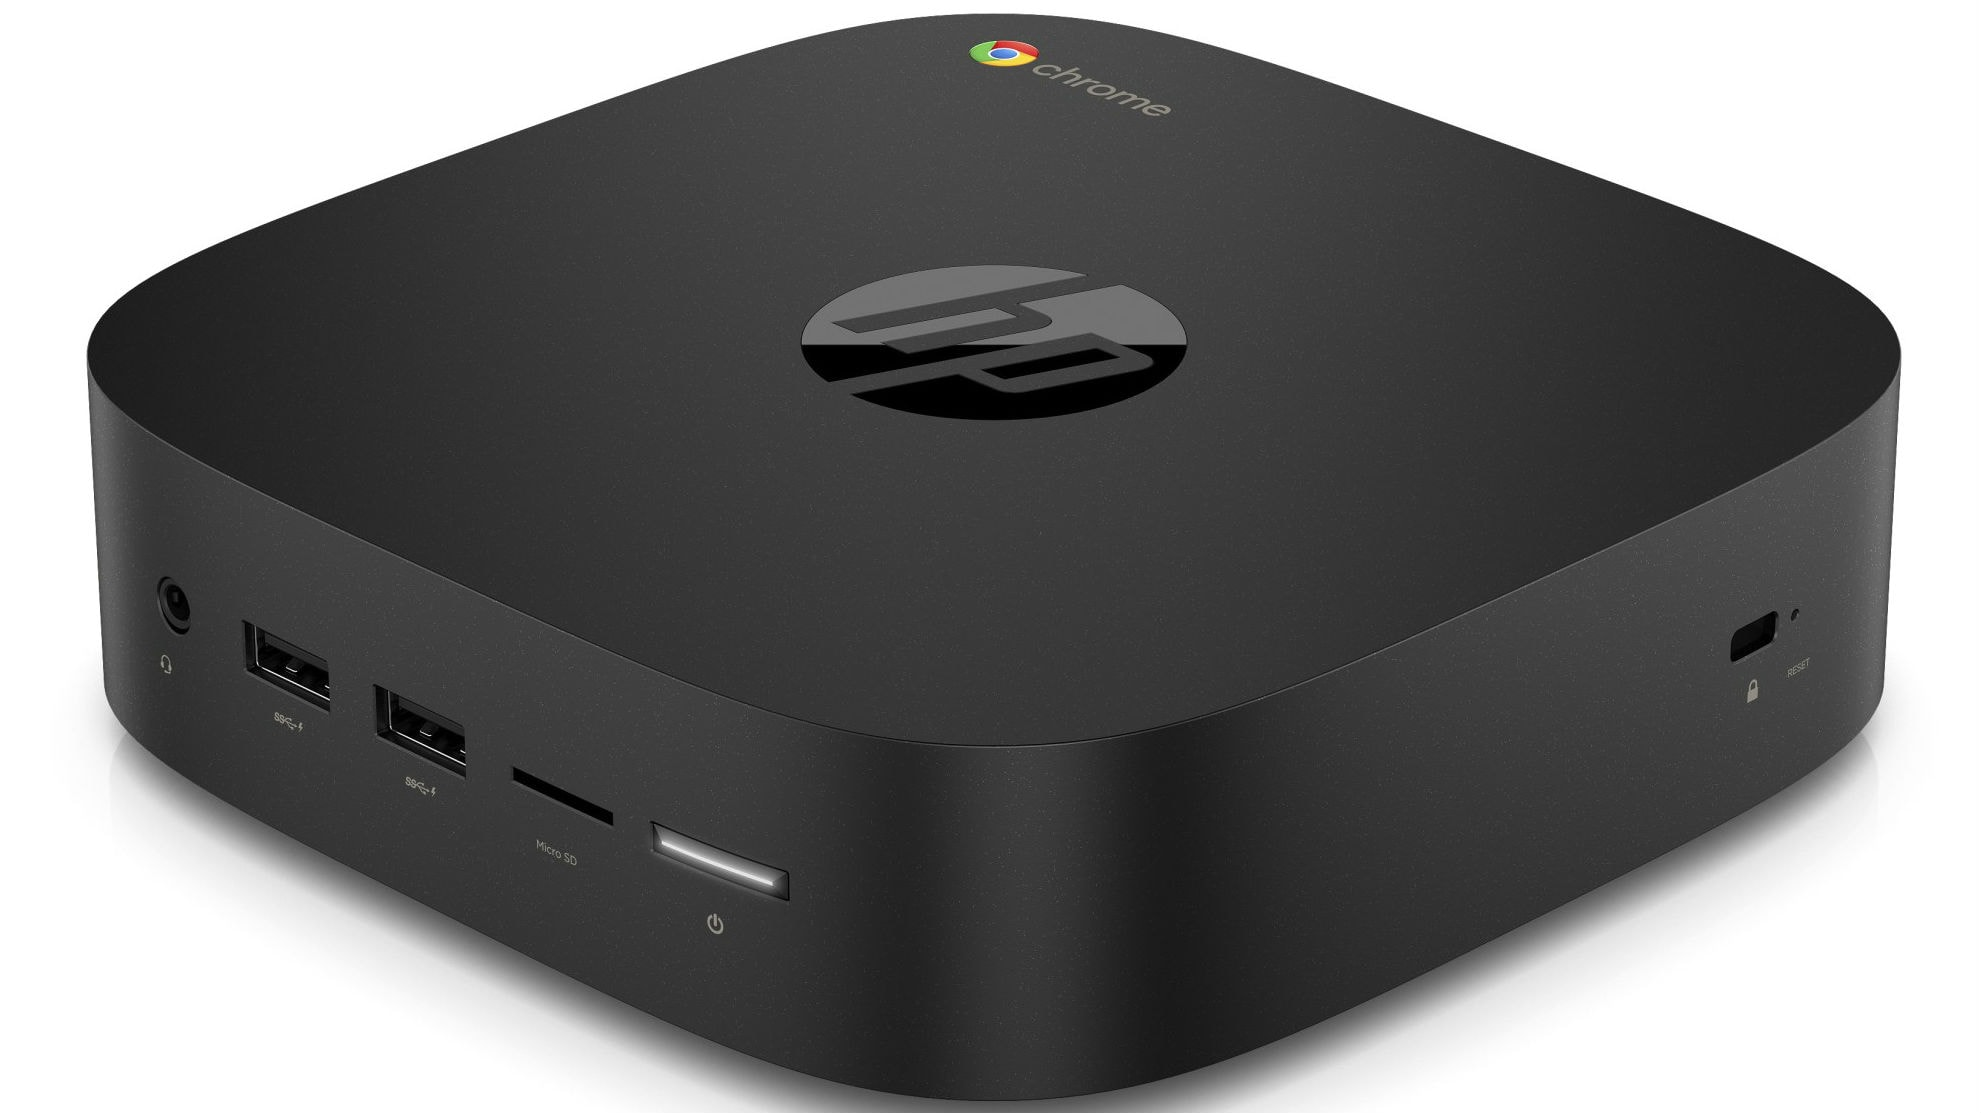 The ASUS Chromebox 3 is destined for businesses